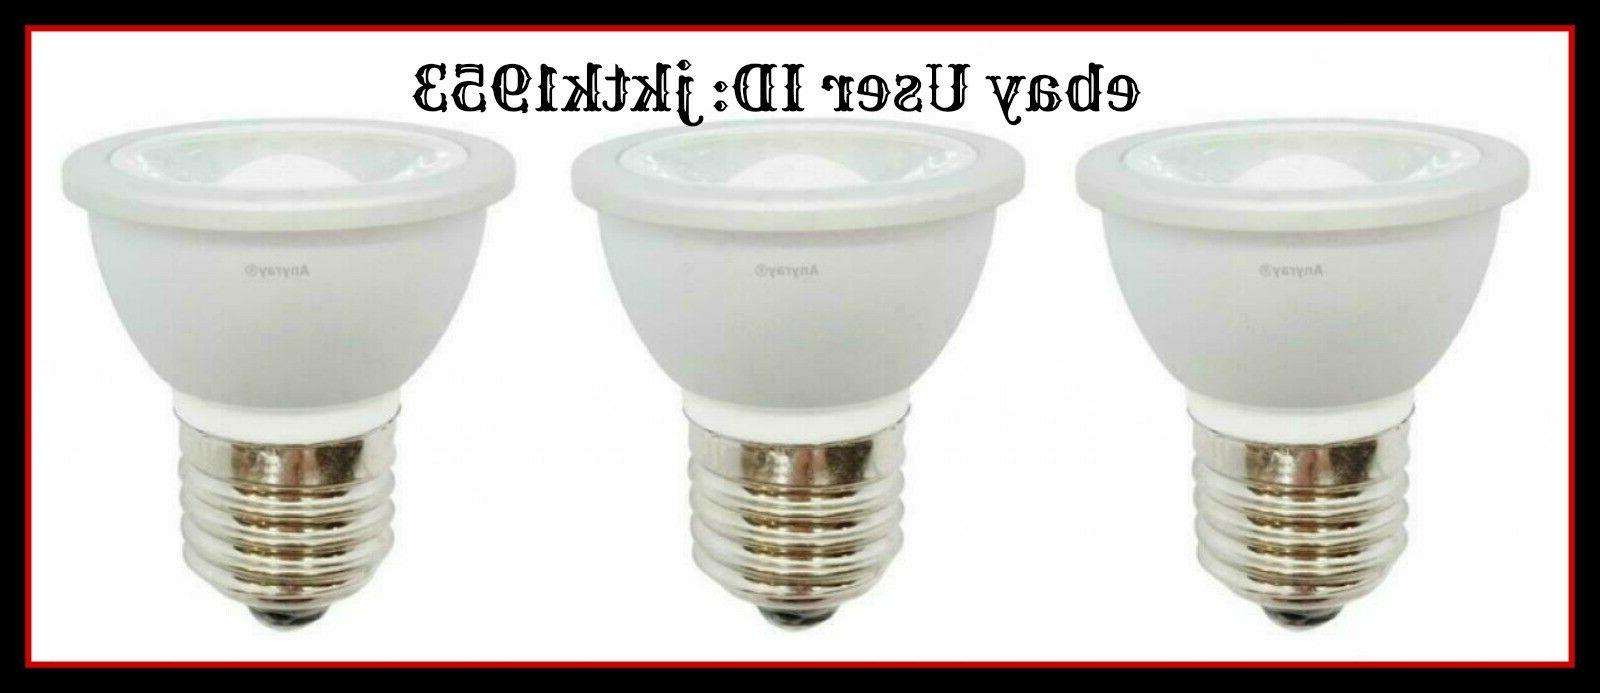 3 led light bulbs hr16 120v e27